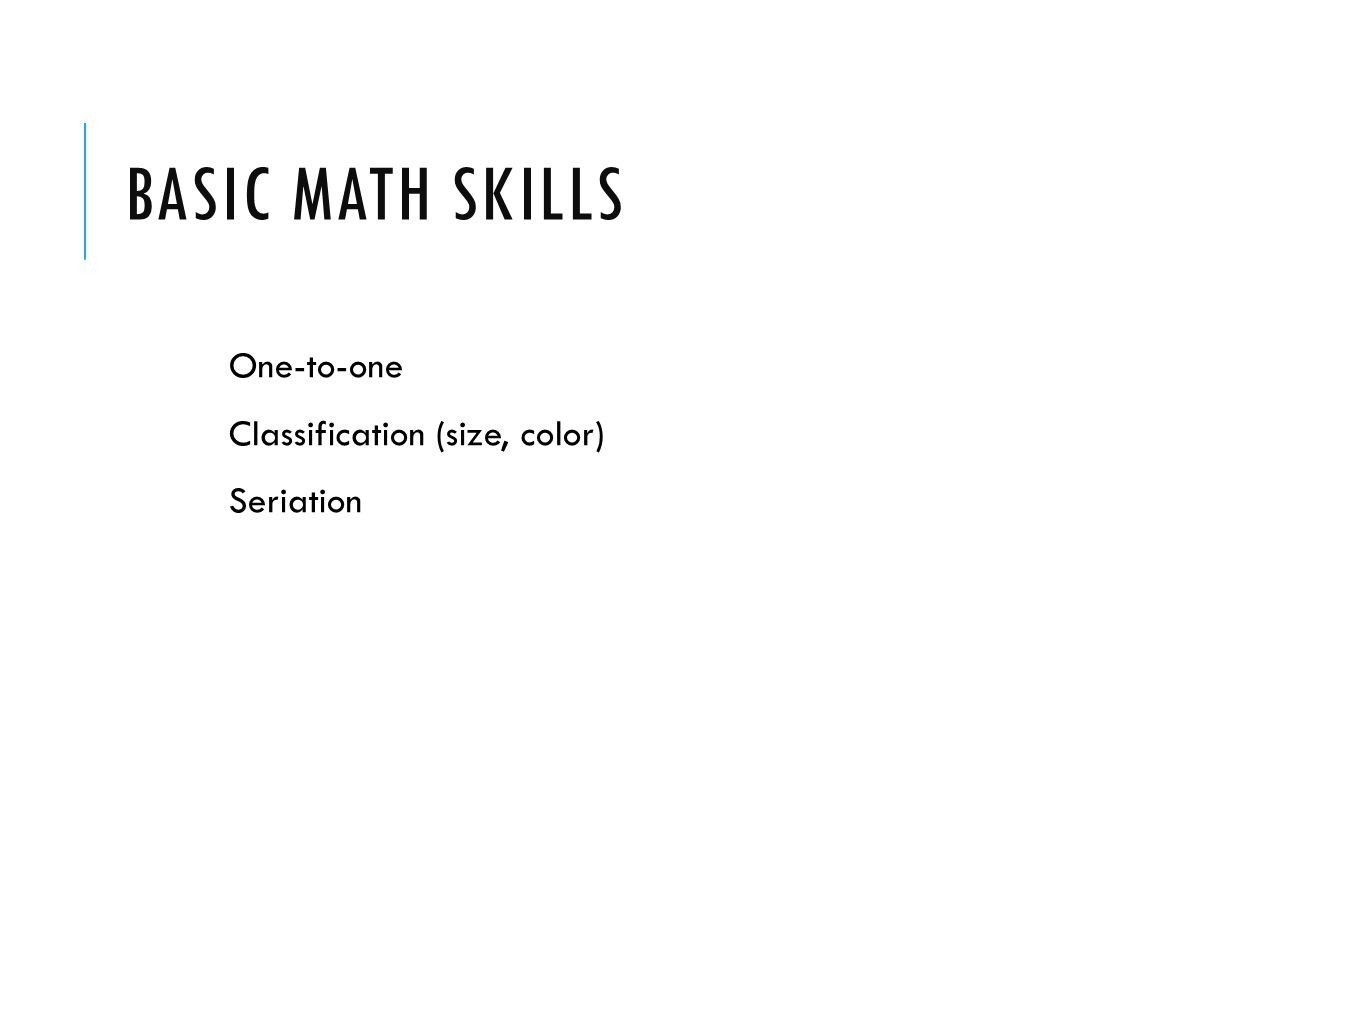 BASIC MATH SKILLS One-to-one Classification (size, color) Seriation